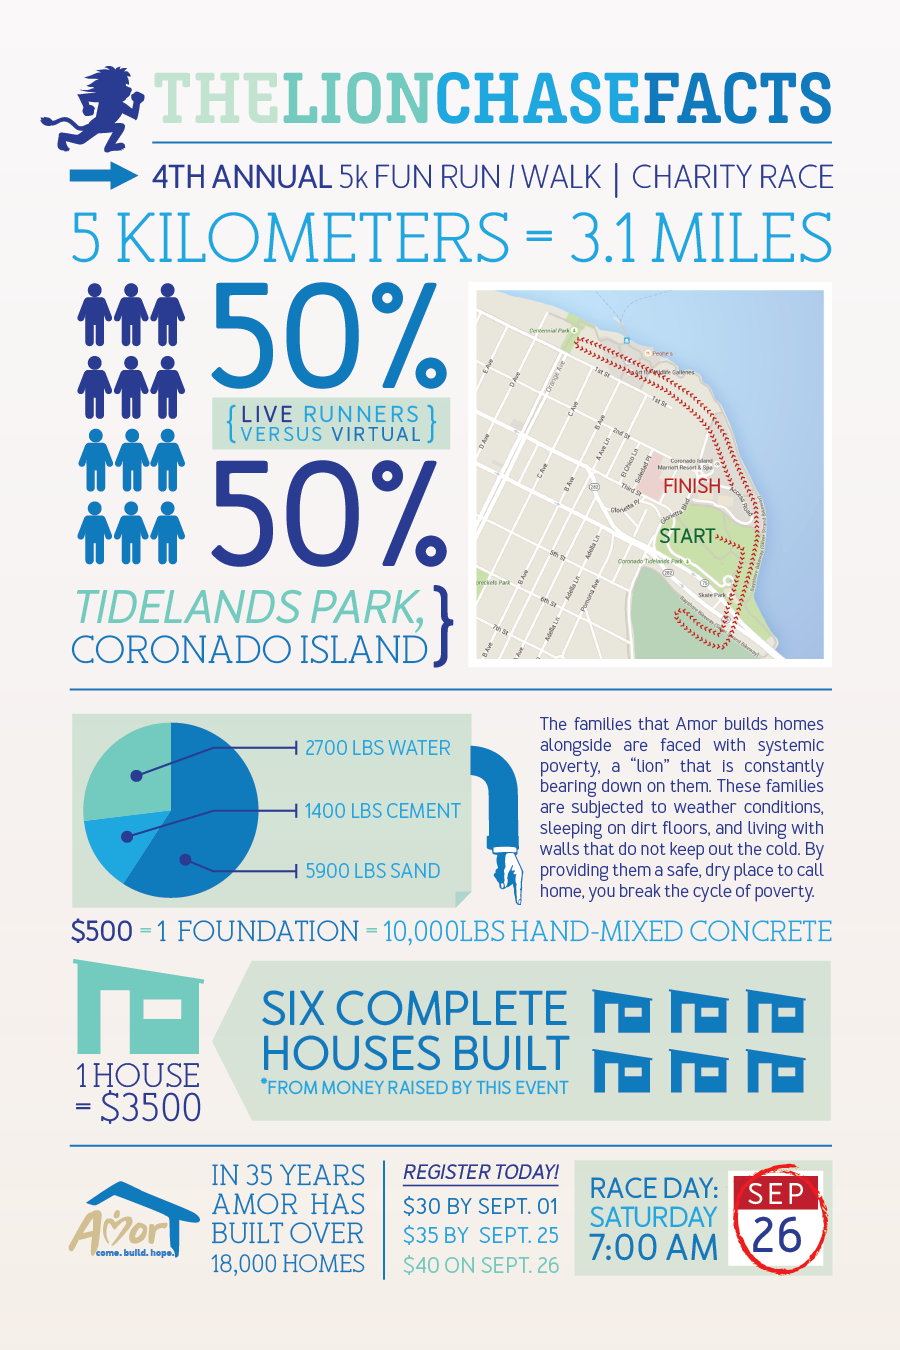 2015 Lion Chase 5k Charity Race Infographic - benefiting Case de Amor